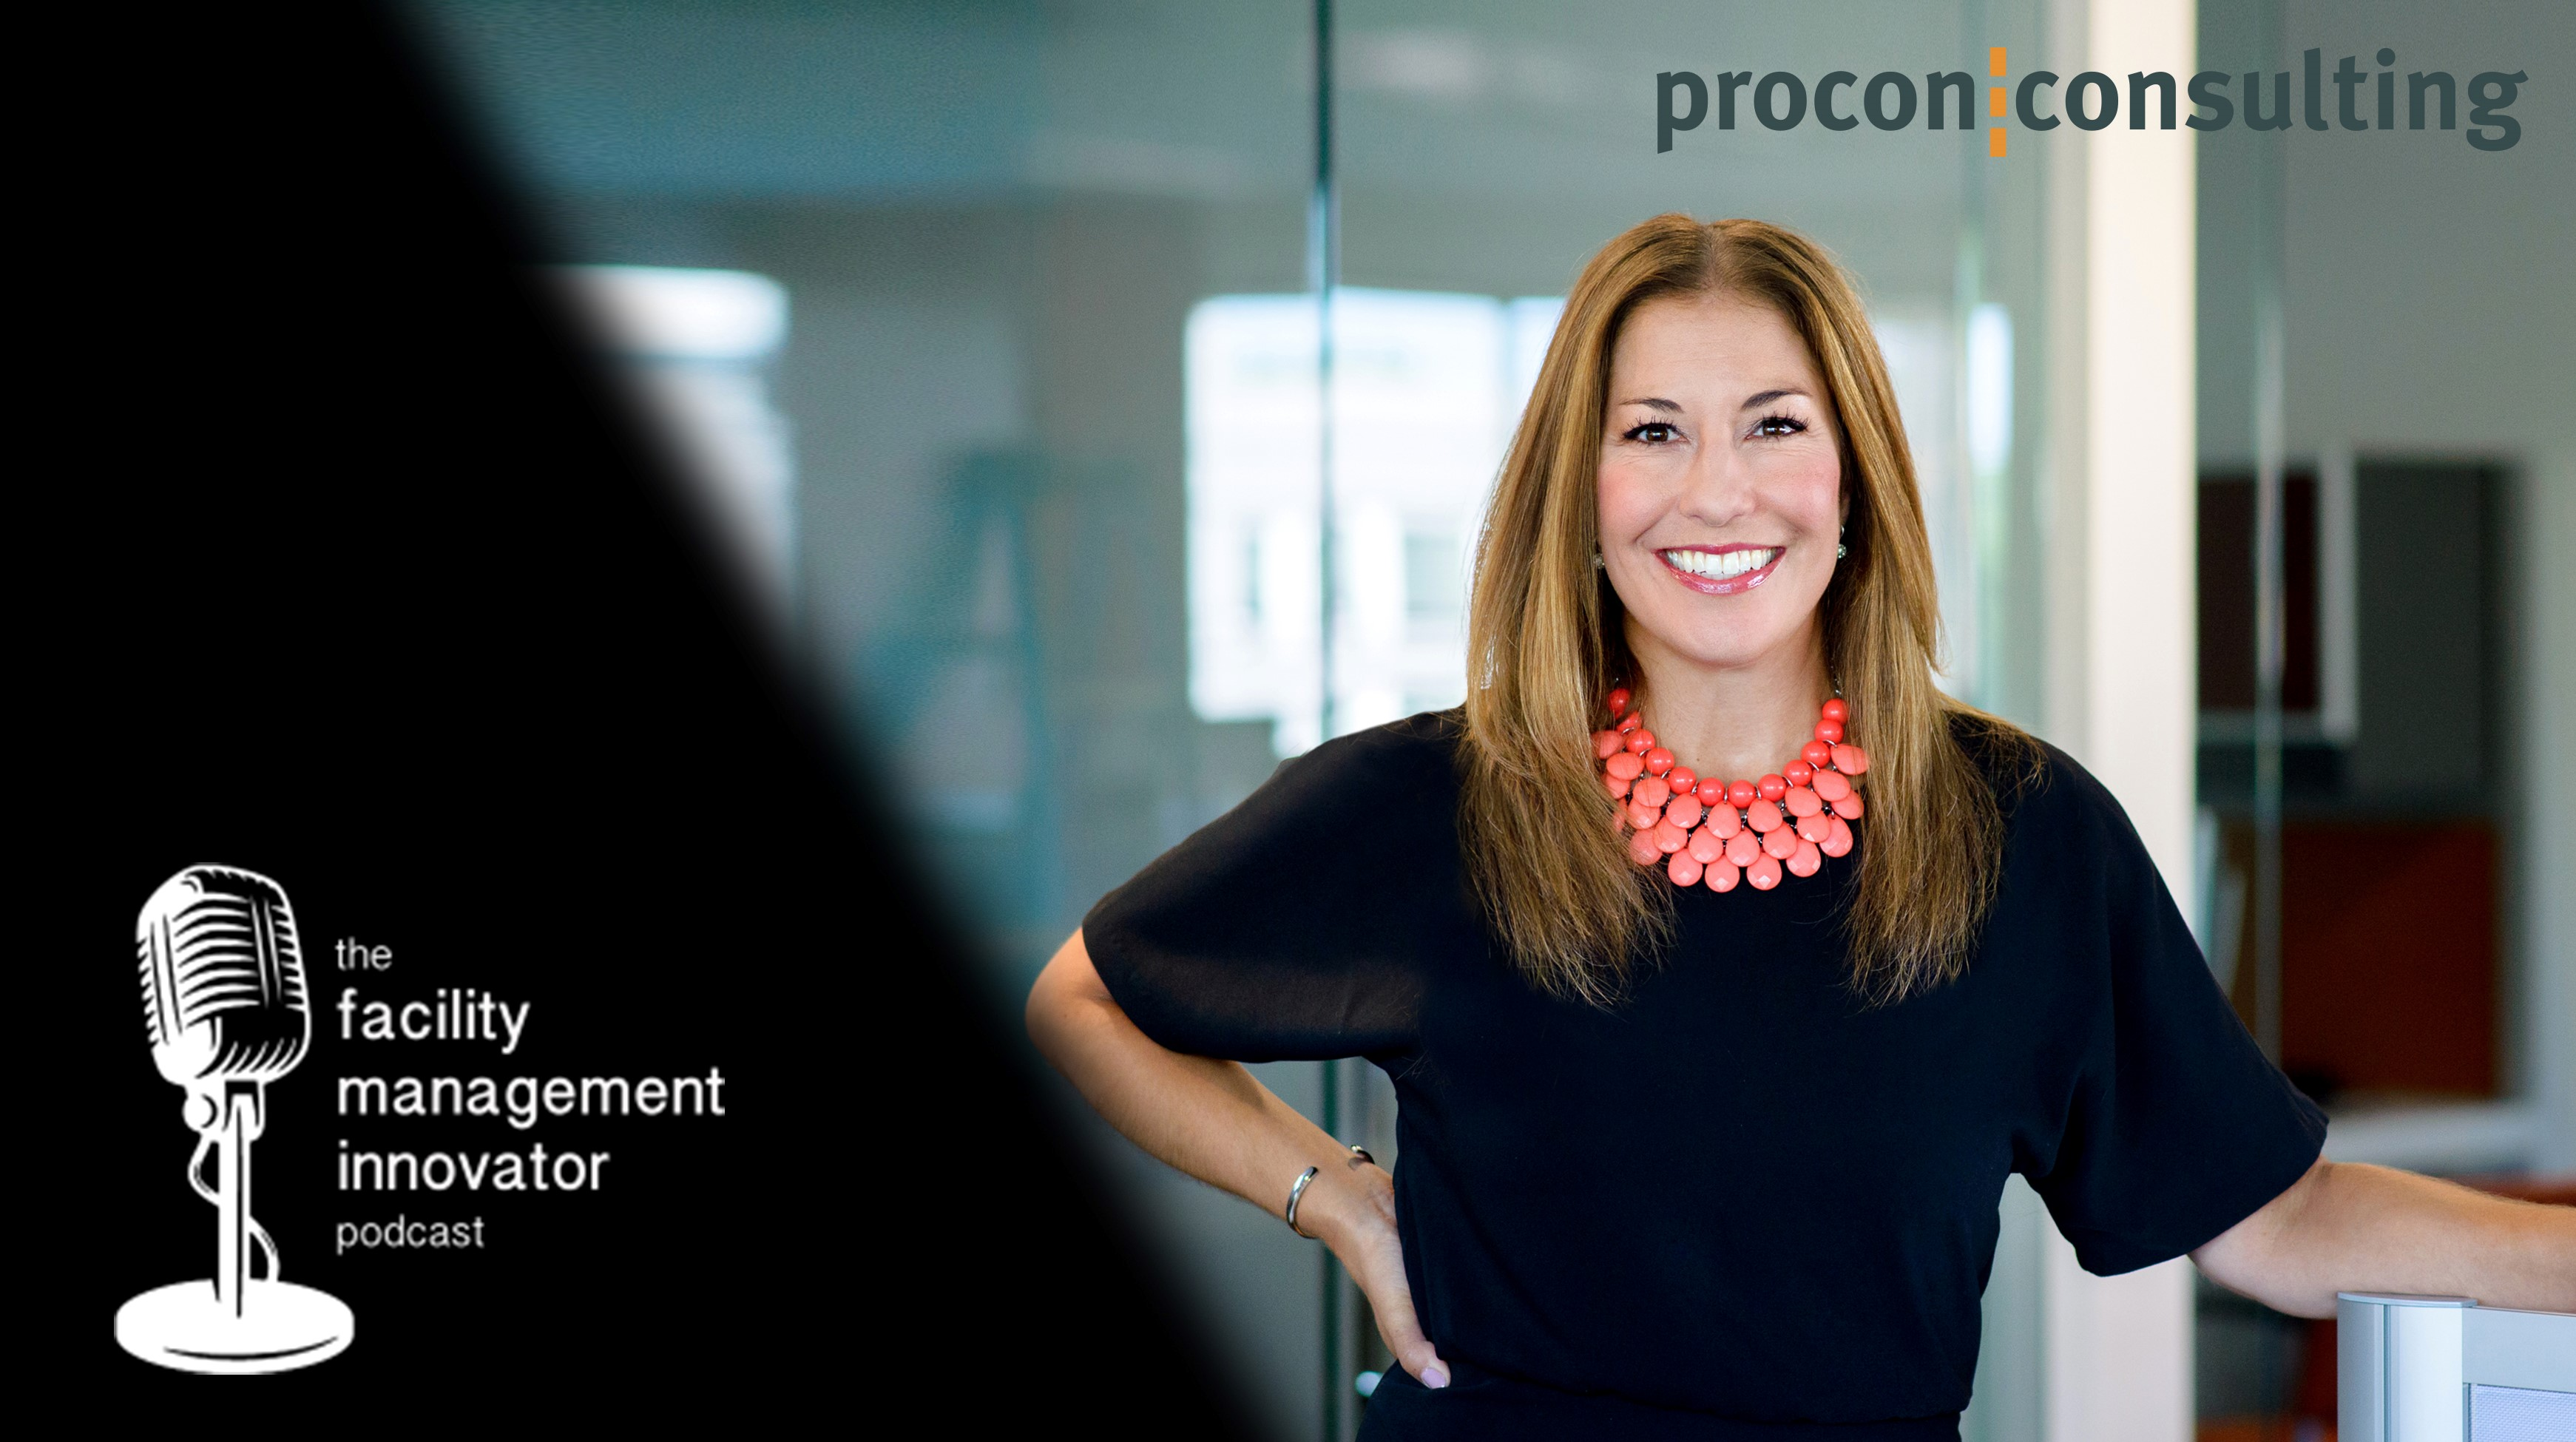 Ep. 67: Space Planning, Change Management & IFMA   Renee Stratton - Procon Consulting